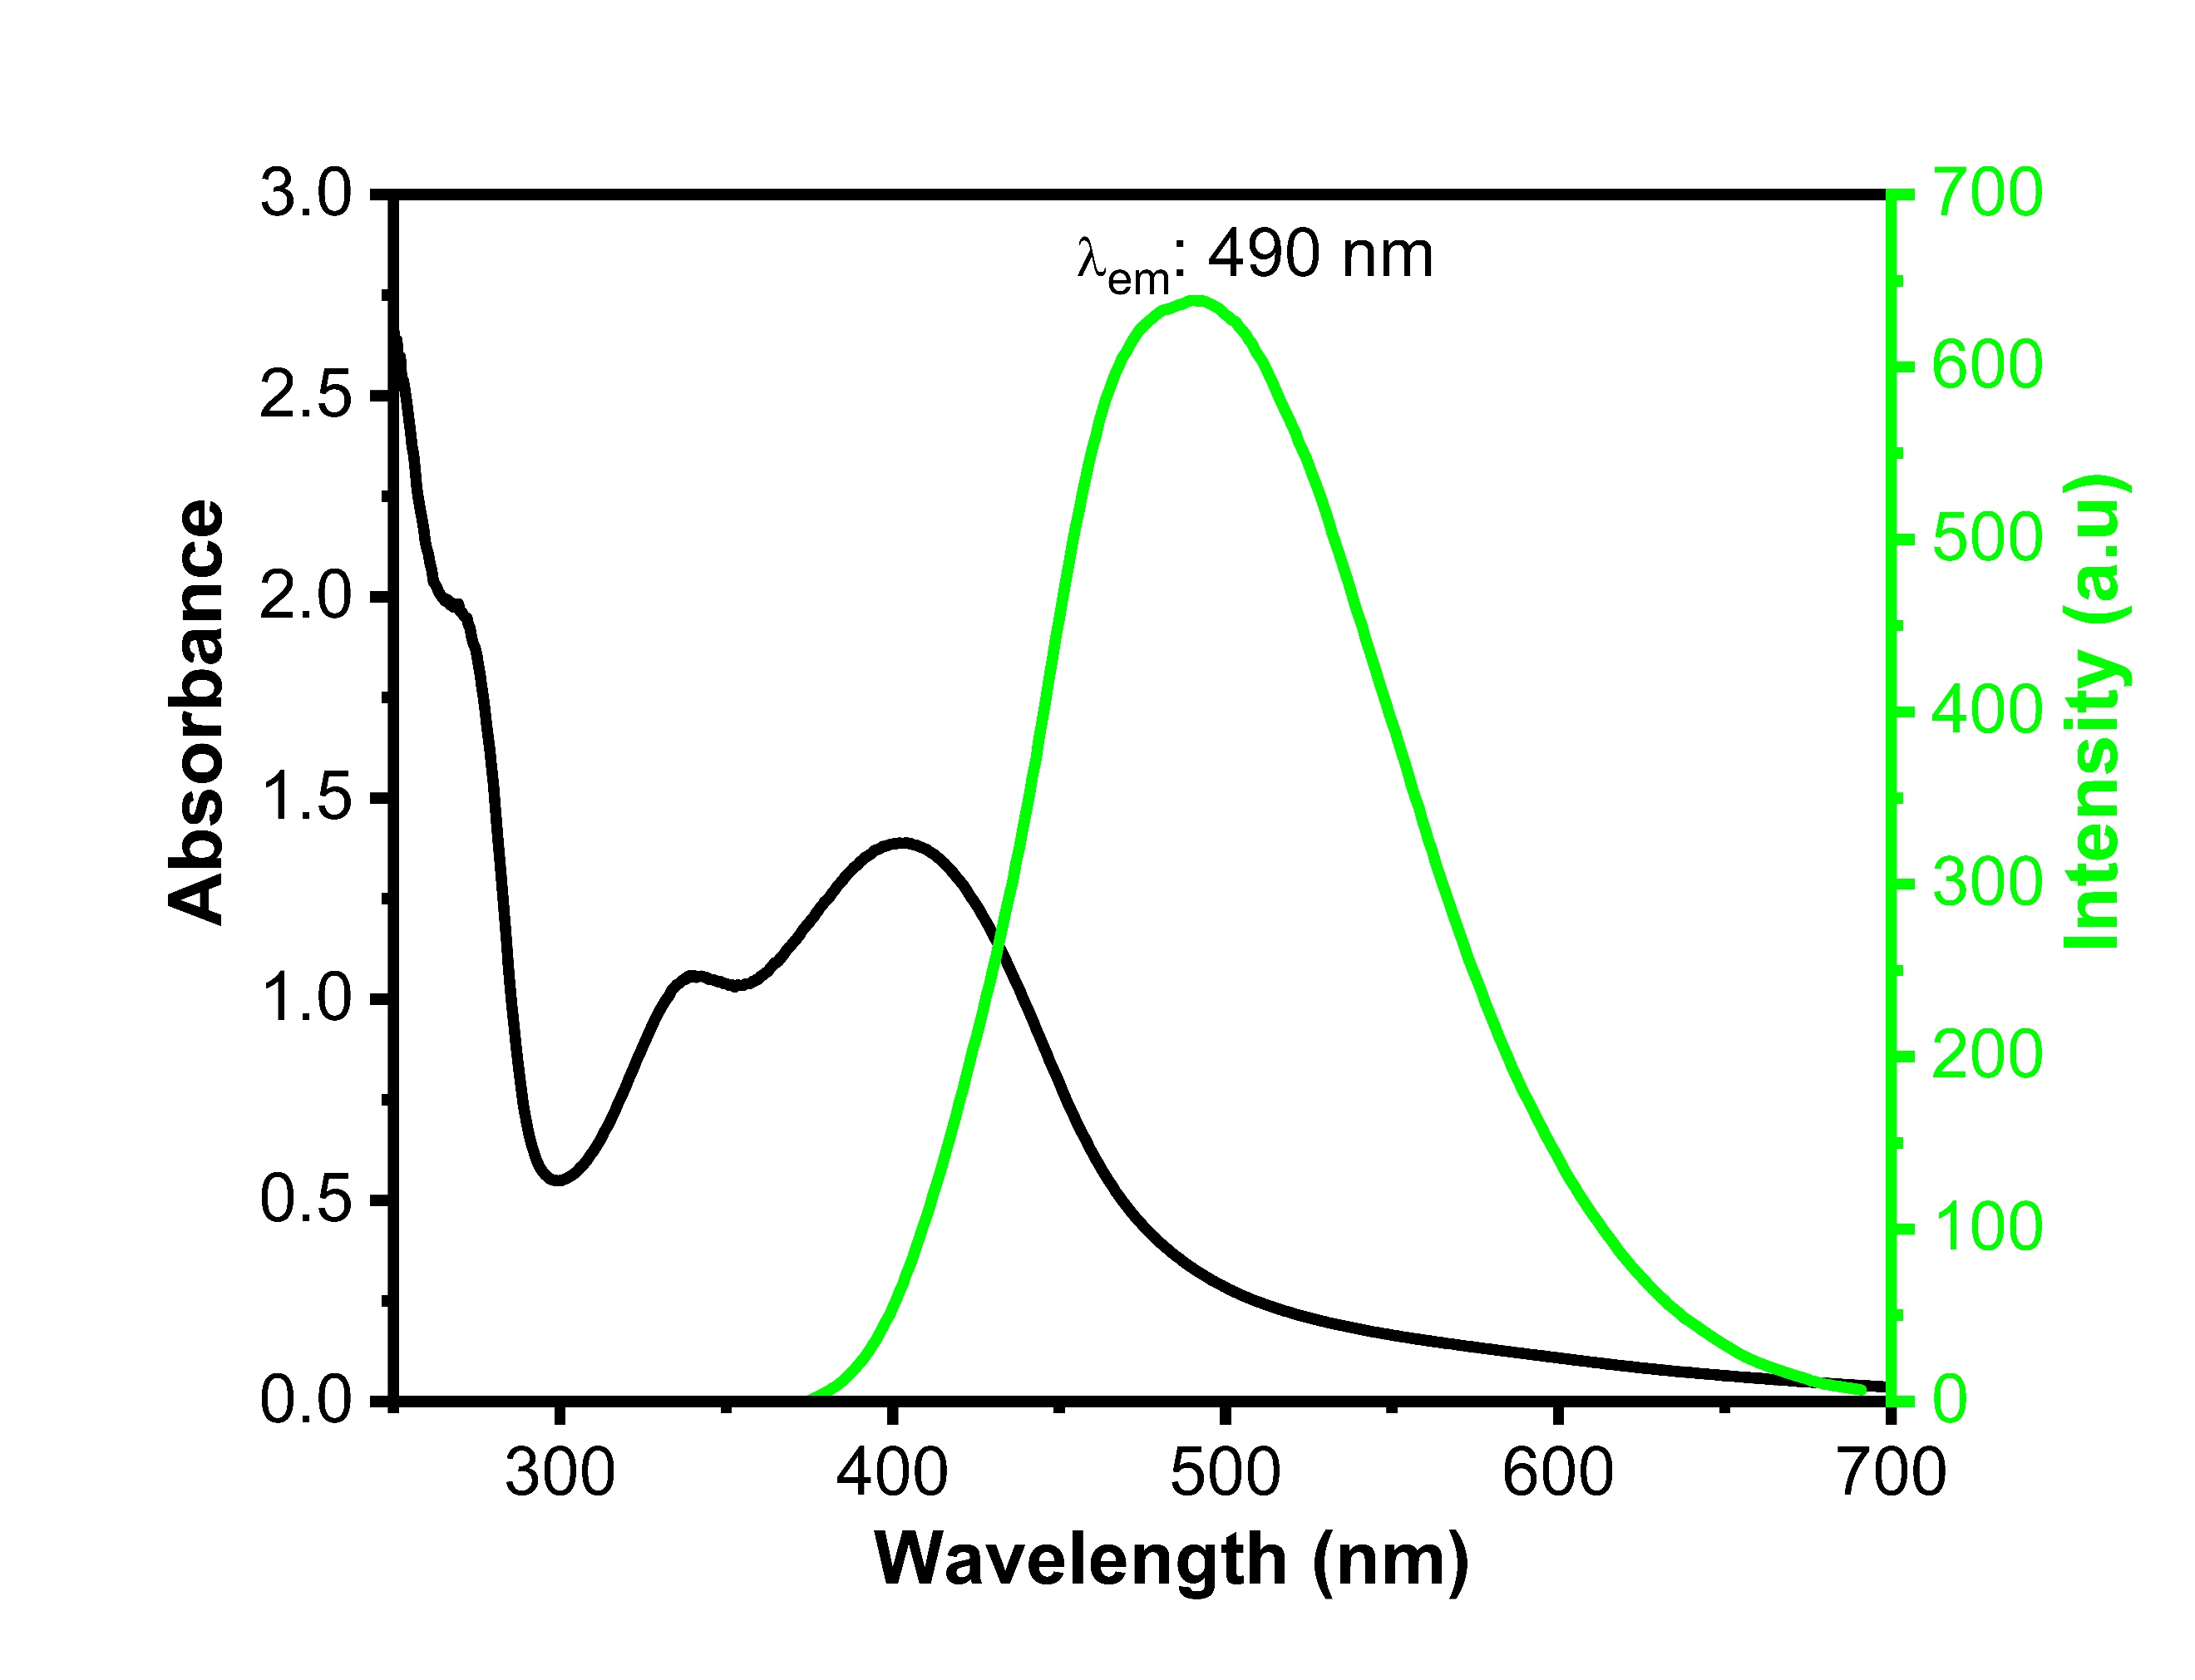 UV/Visand Fluorescence emission spectras(λexc: 365 nm) of green carbon quantum dot (g-cqds).